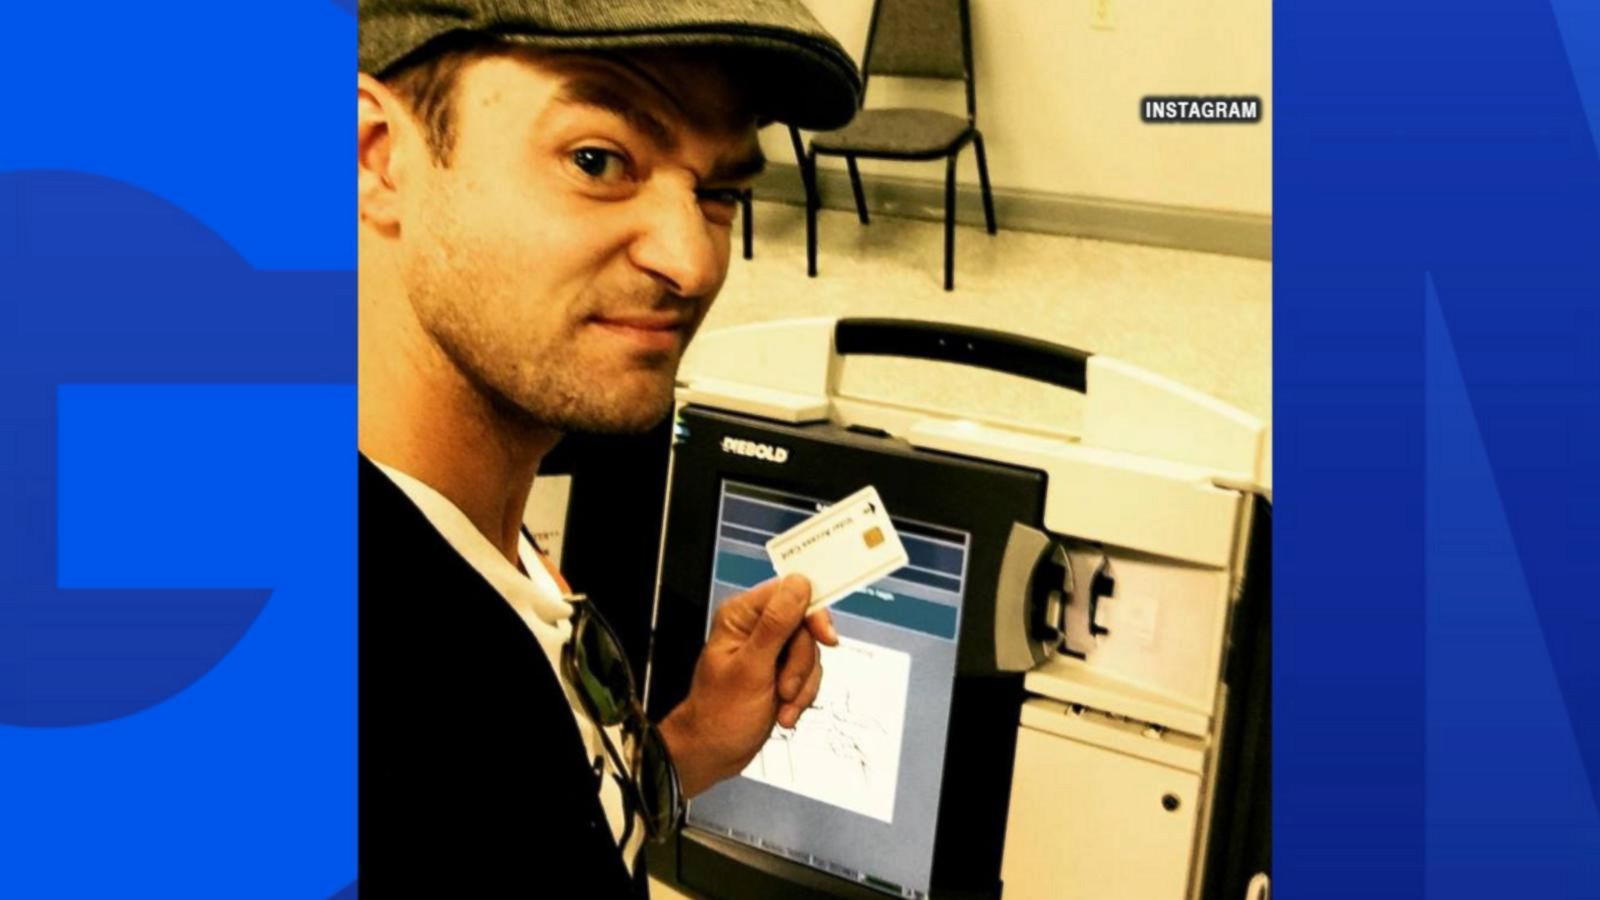 VIDEO: Singer Justin Timberlake Called Out for Voting Booth Selfie